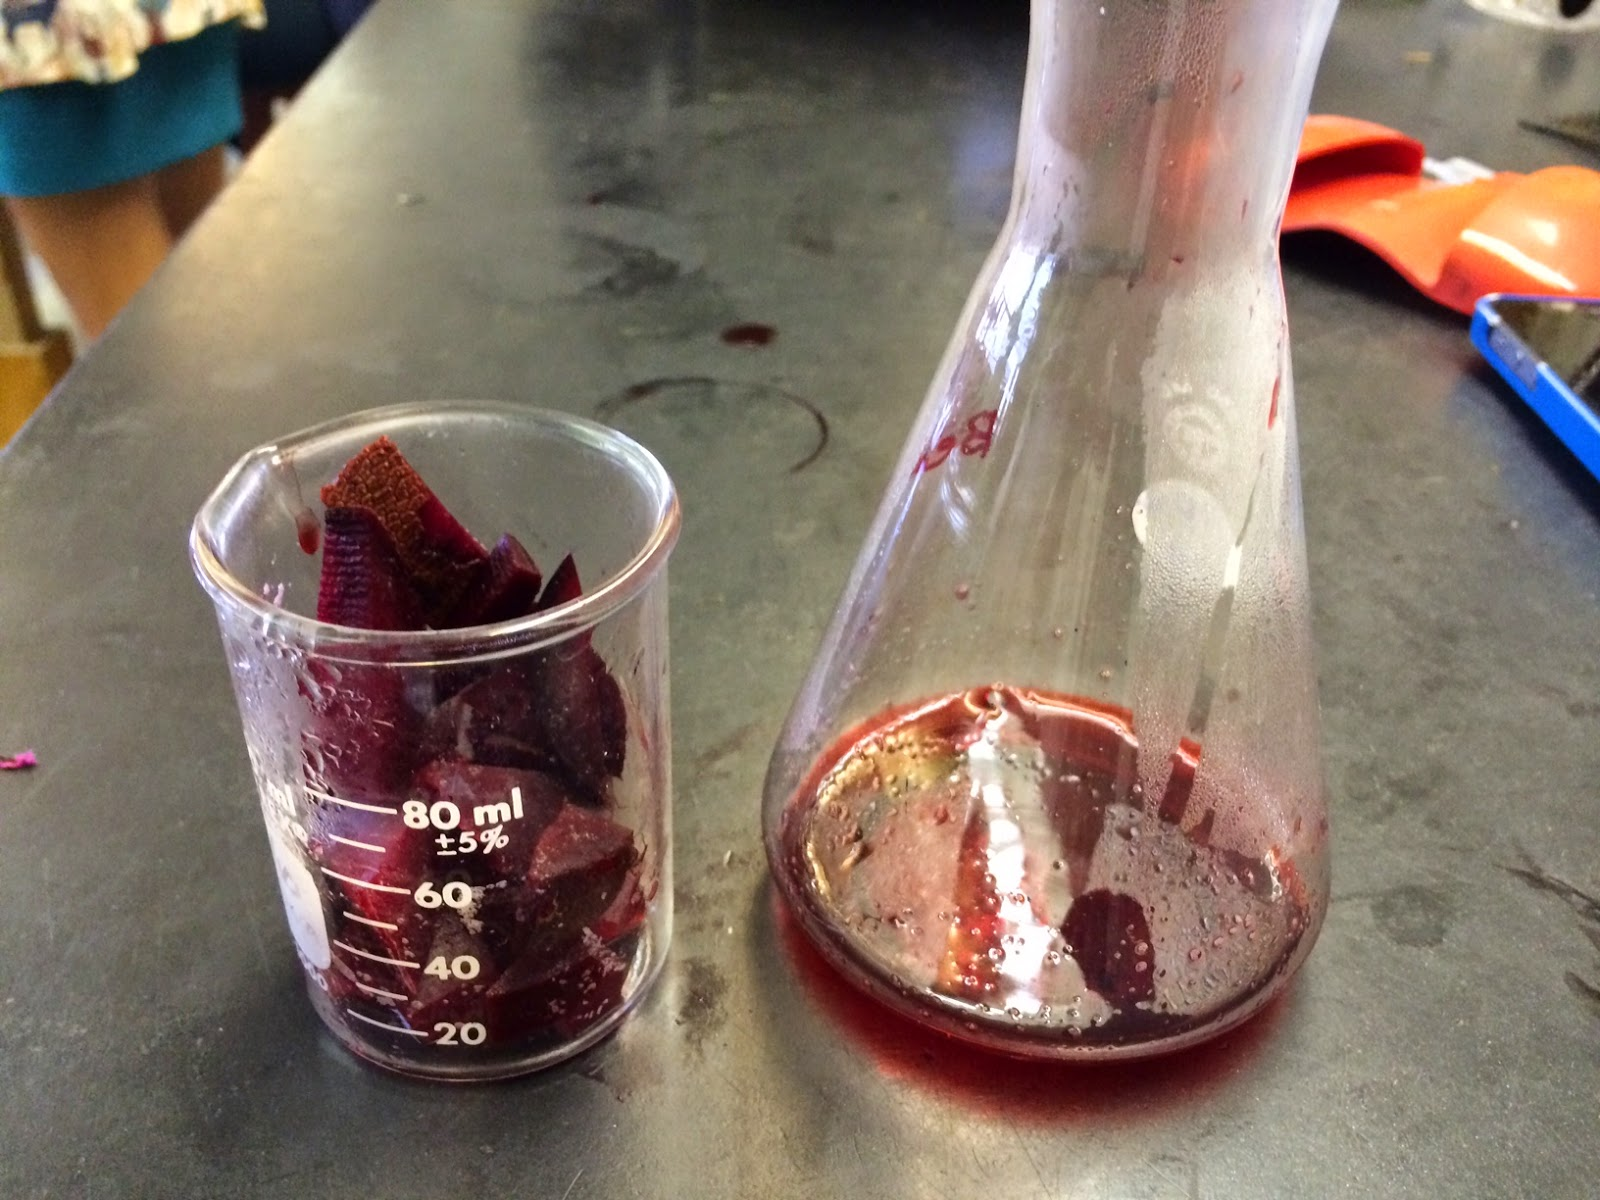 pigment released from beetroot experiment coursework This is denoted in the subject content in bold type and placing slices of fresh beetroot in different they are packed with a red pigment called.